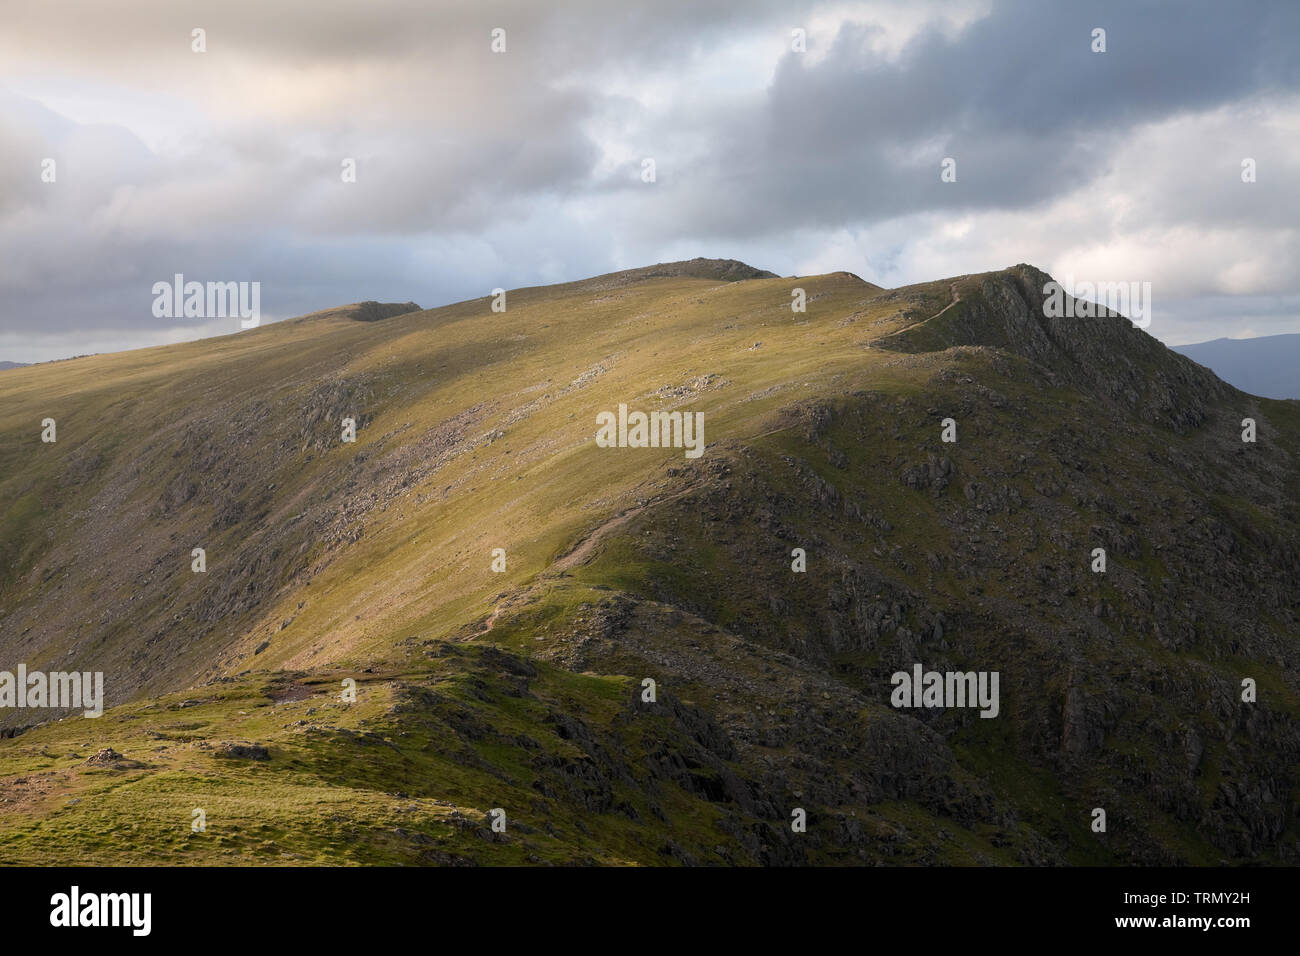 Swirl How seen from Levers Hause, in the English Lake District, UK - Stock Image